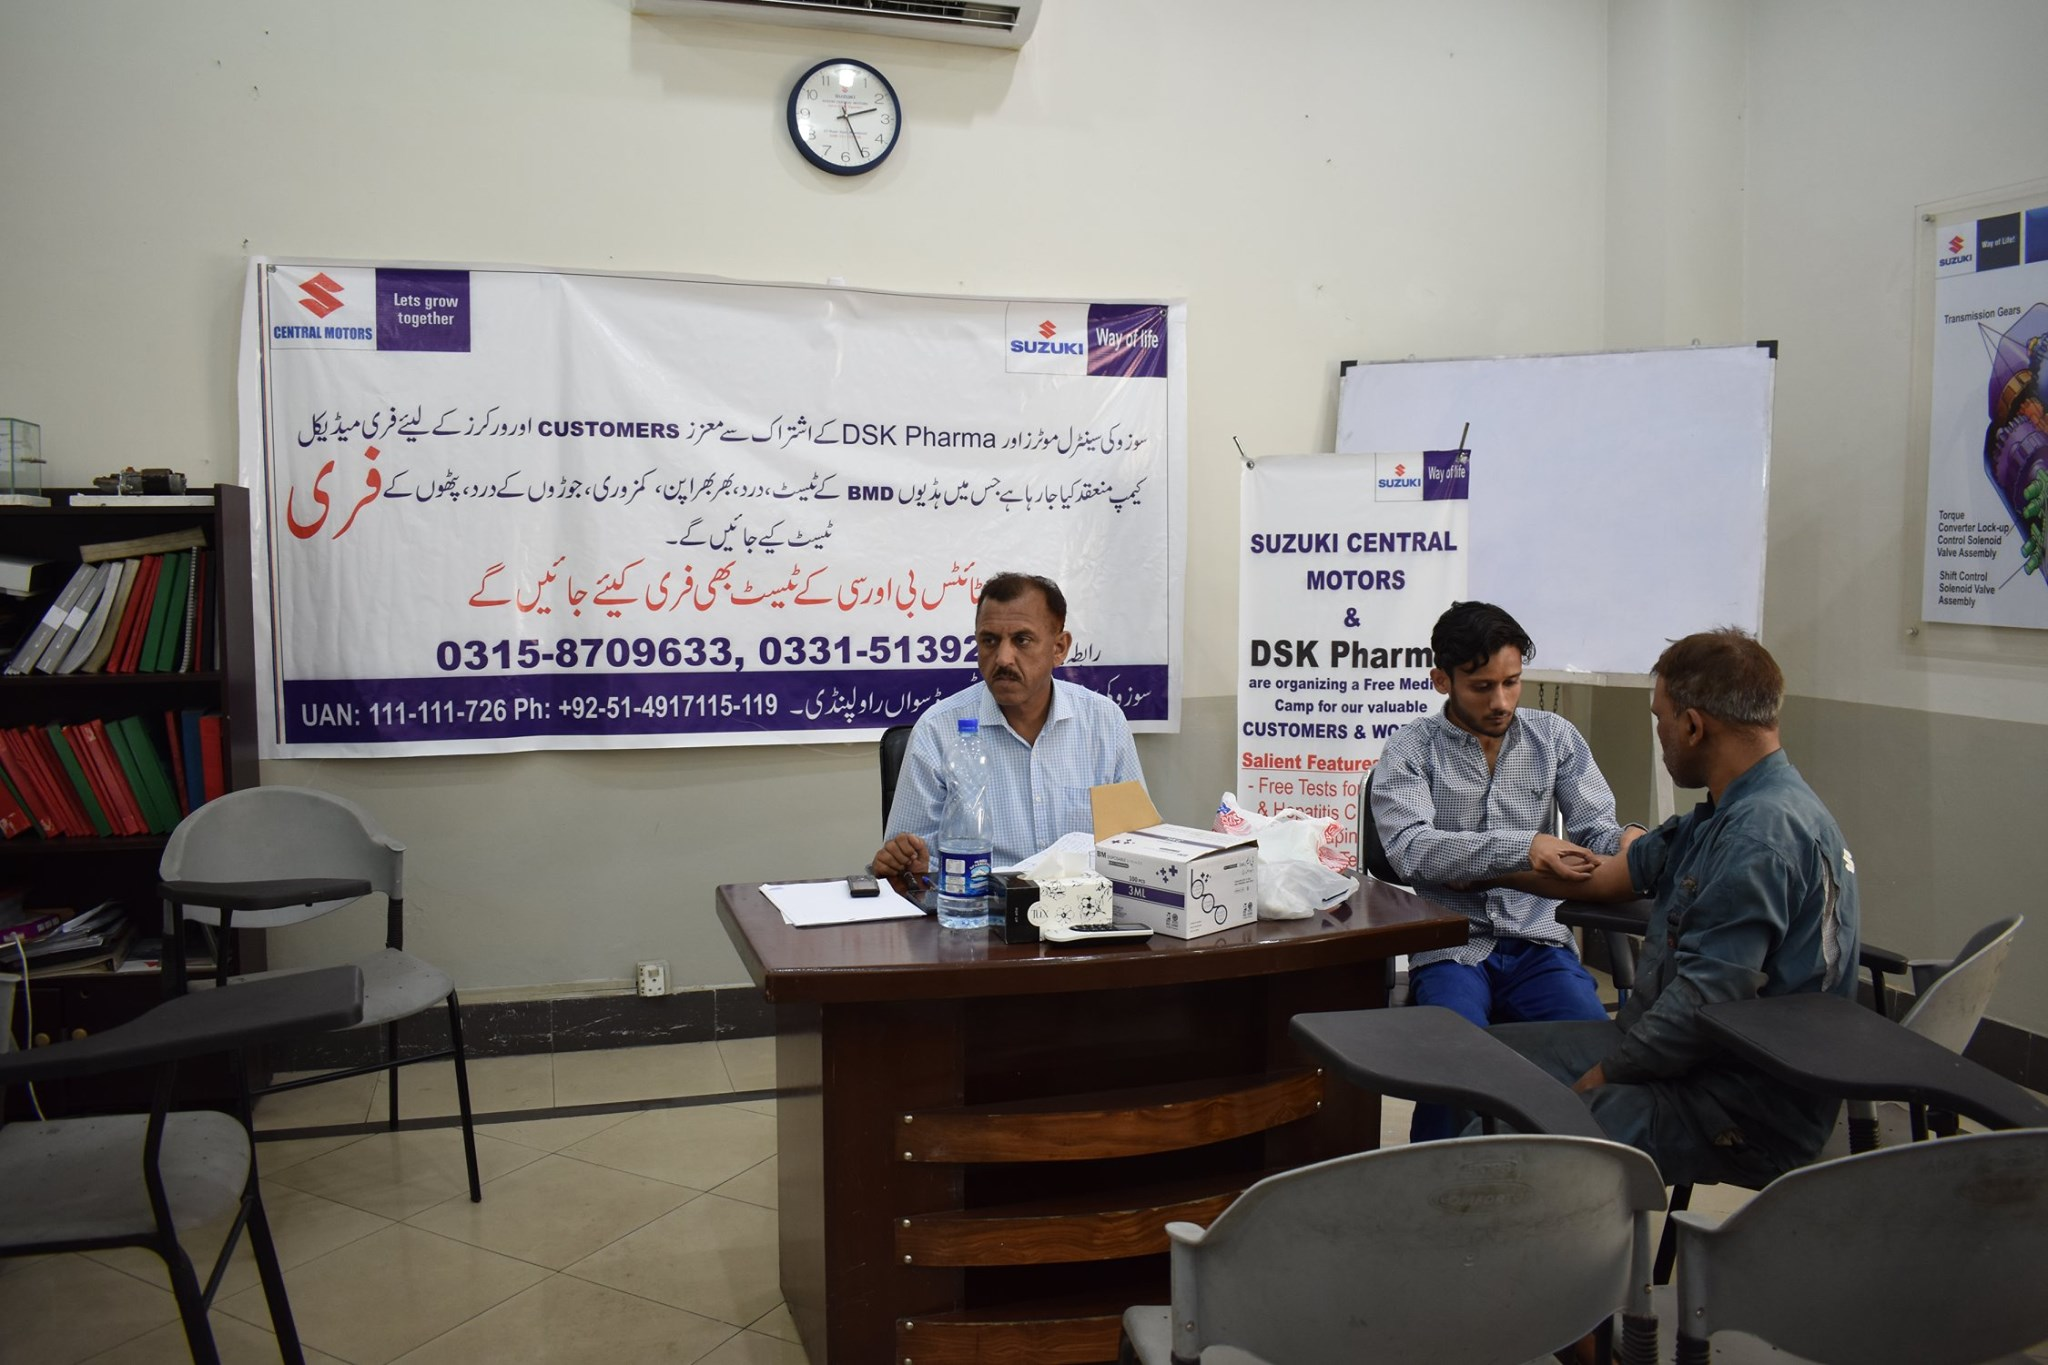 Free Medical Camp For Employees And Customers 29-06-2019